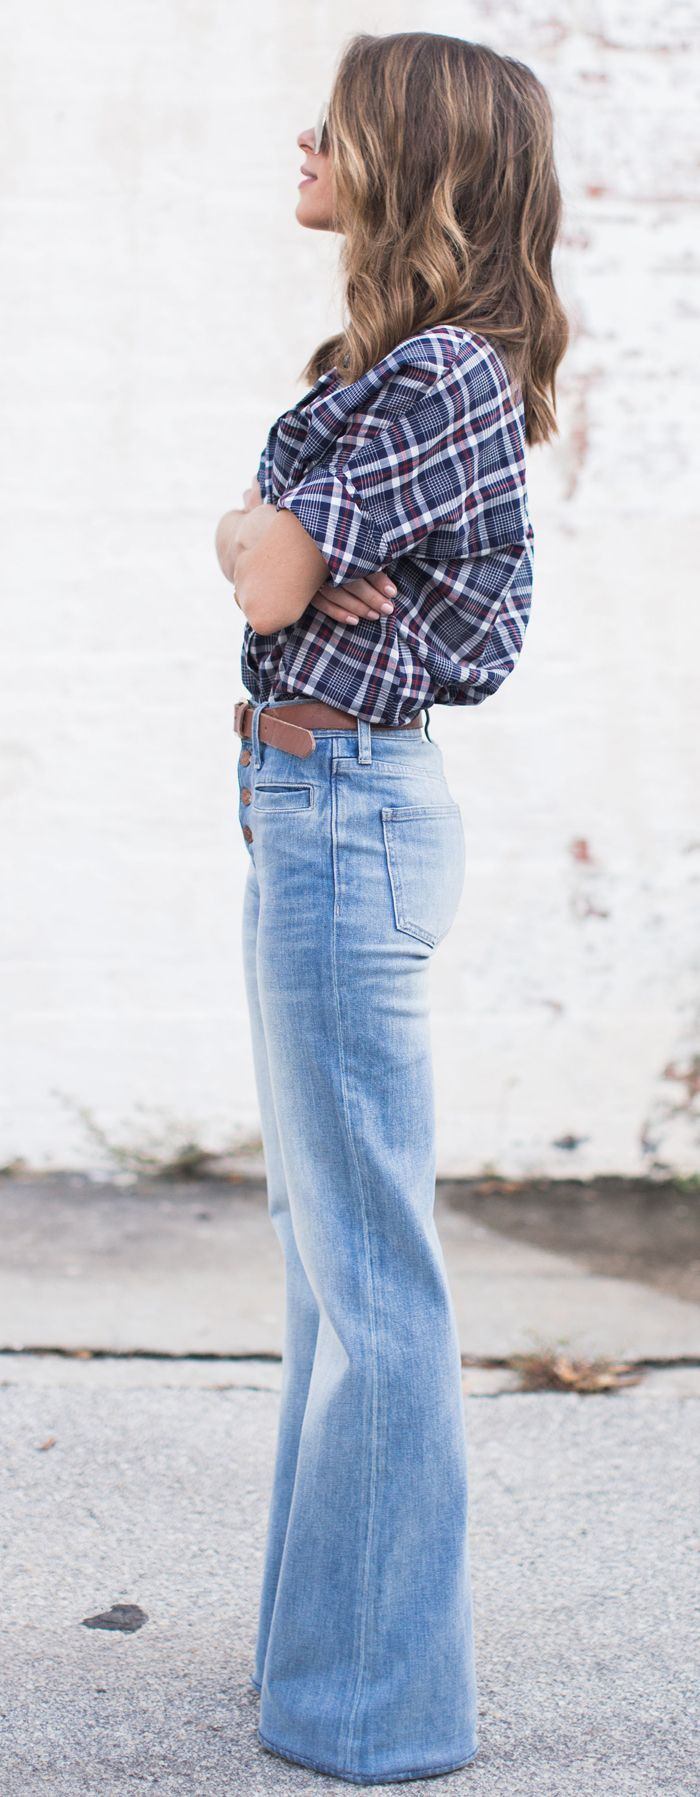 Flannel shirt trend  Flares jeans with plaid shirt s fashion trend Outfit to copy